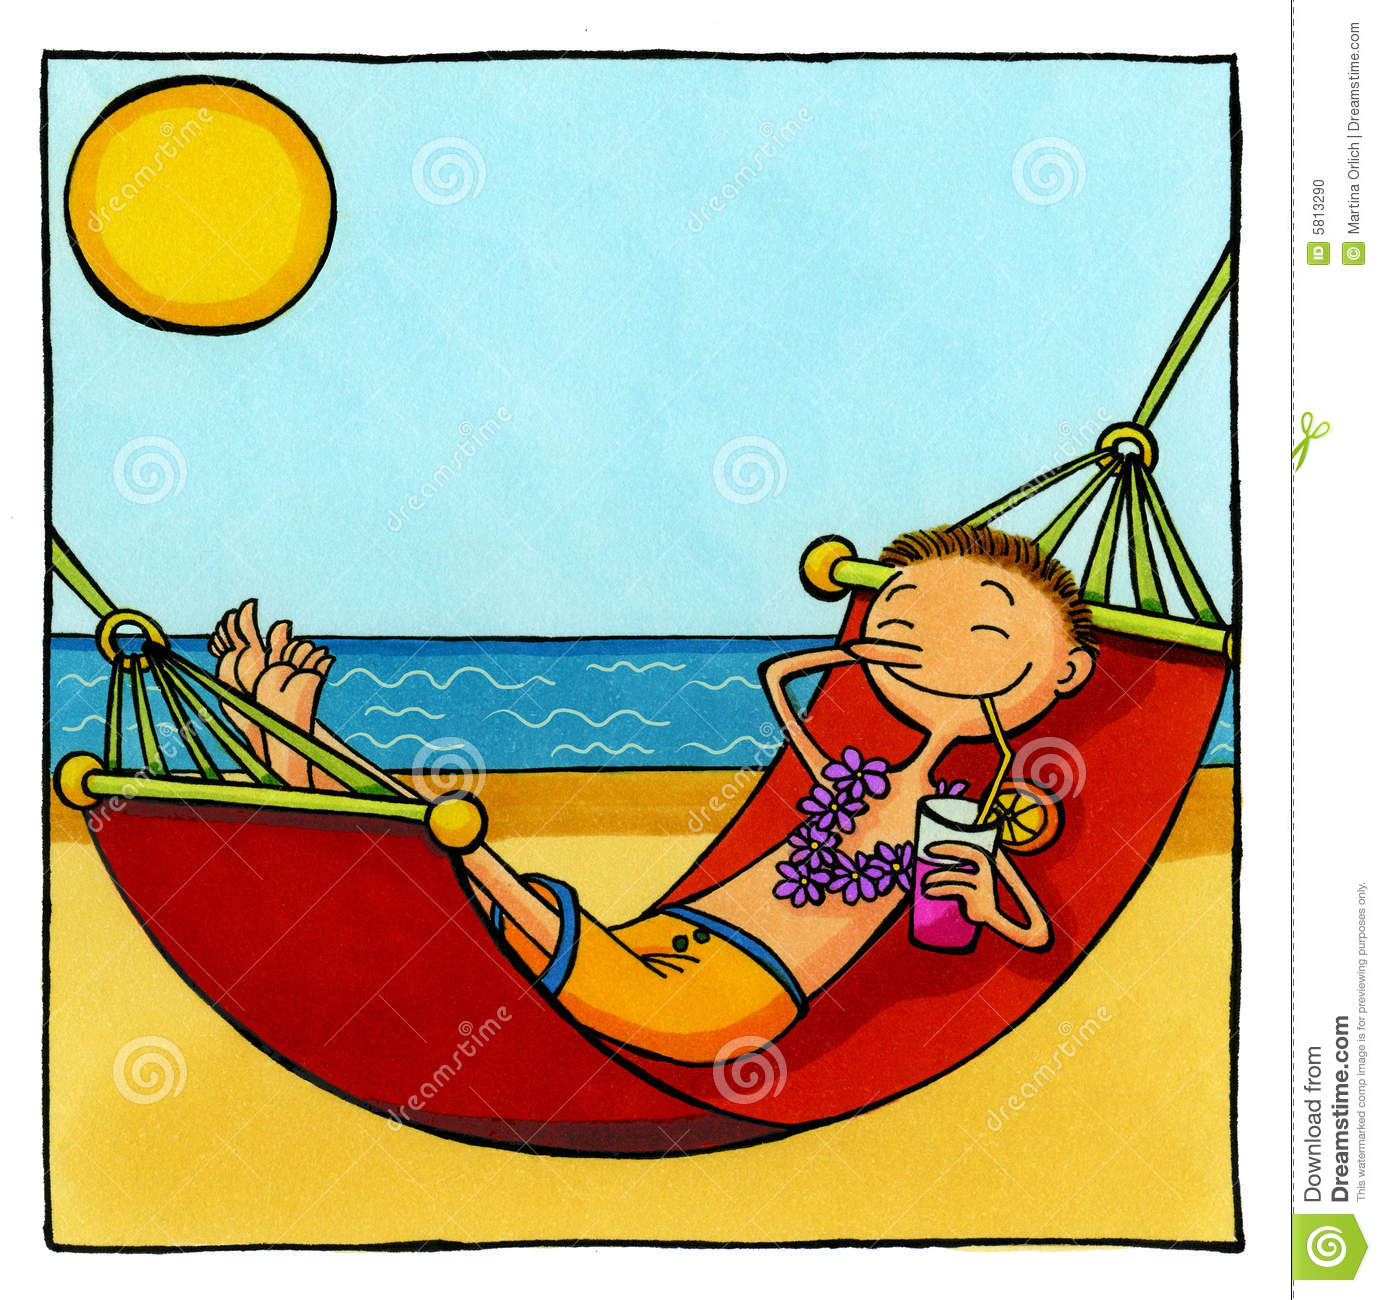 Cartoon Drawing Of A Tourist Relaxing In A Hammock At The Beach